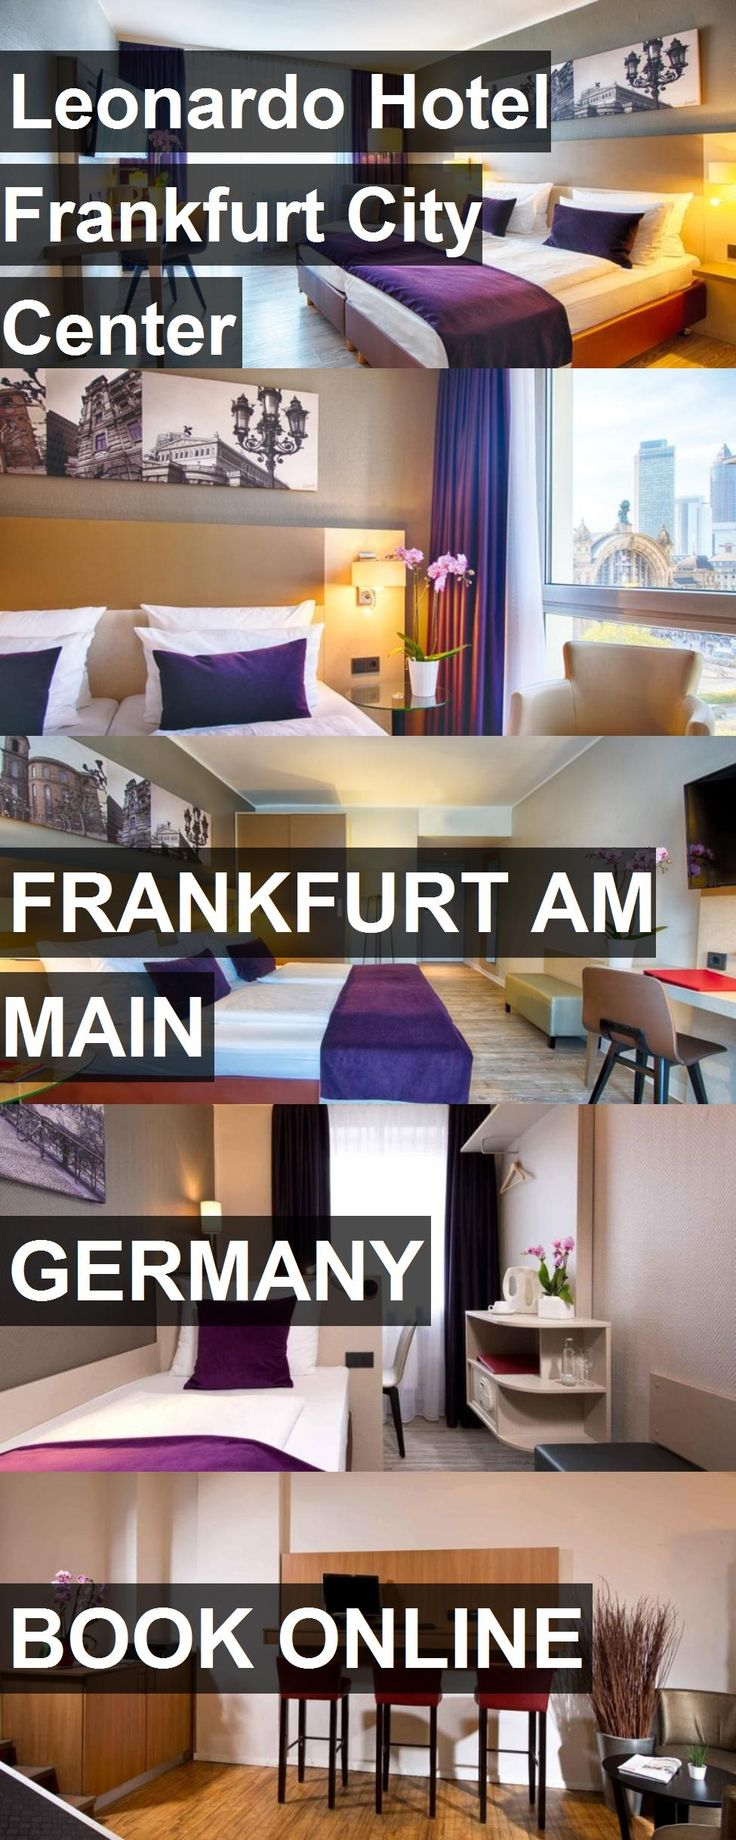 Hotel Leonardo Hotel Frankfurt City Center in Frankfurt am Main, Germany. For more information, photos, reviews and best prices please follow the link. #Germany #FrankfurtamMain #LeonardoHotelFrankfurtCityCenter #hotel #travel #vacation